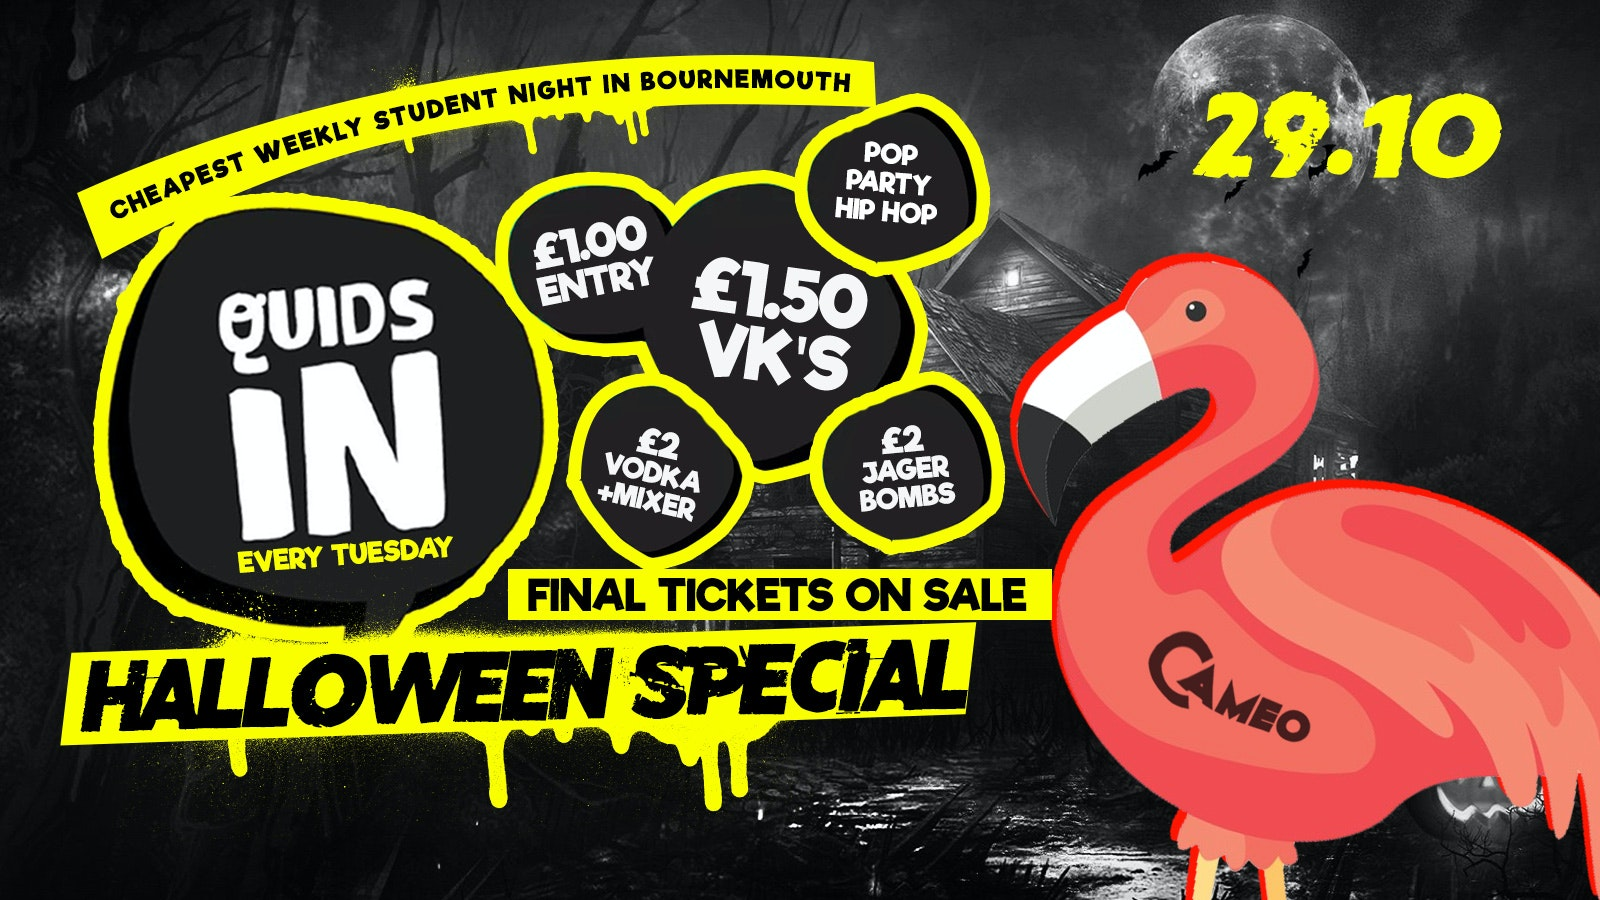 Quids In Spooky Special // 29.10 // Cameo Every Tuesday